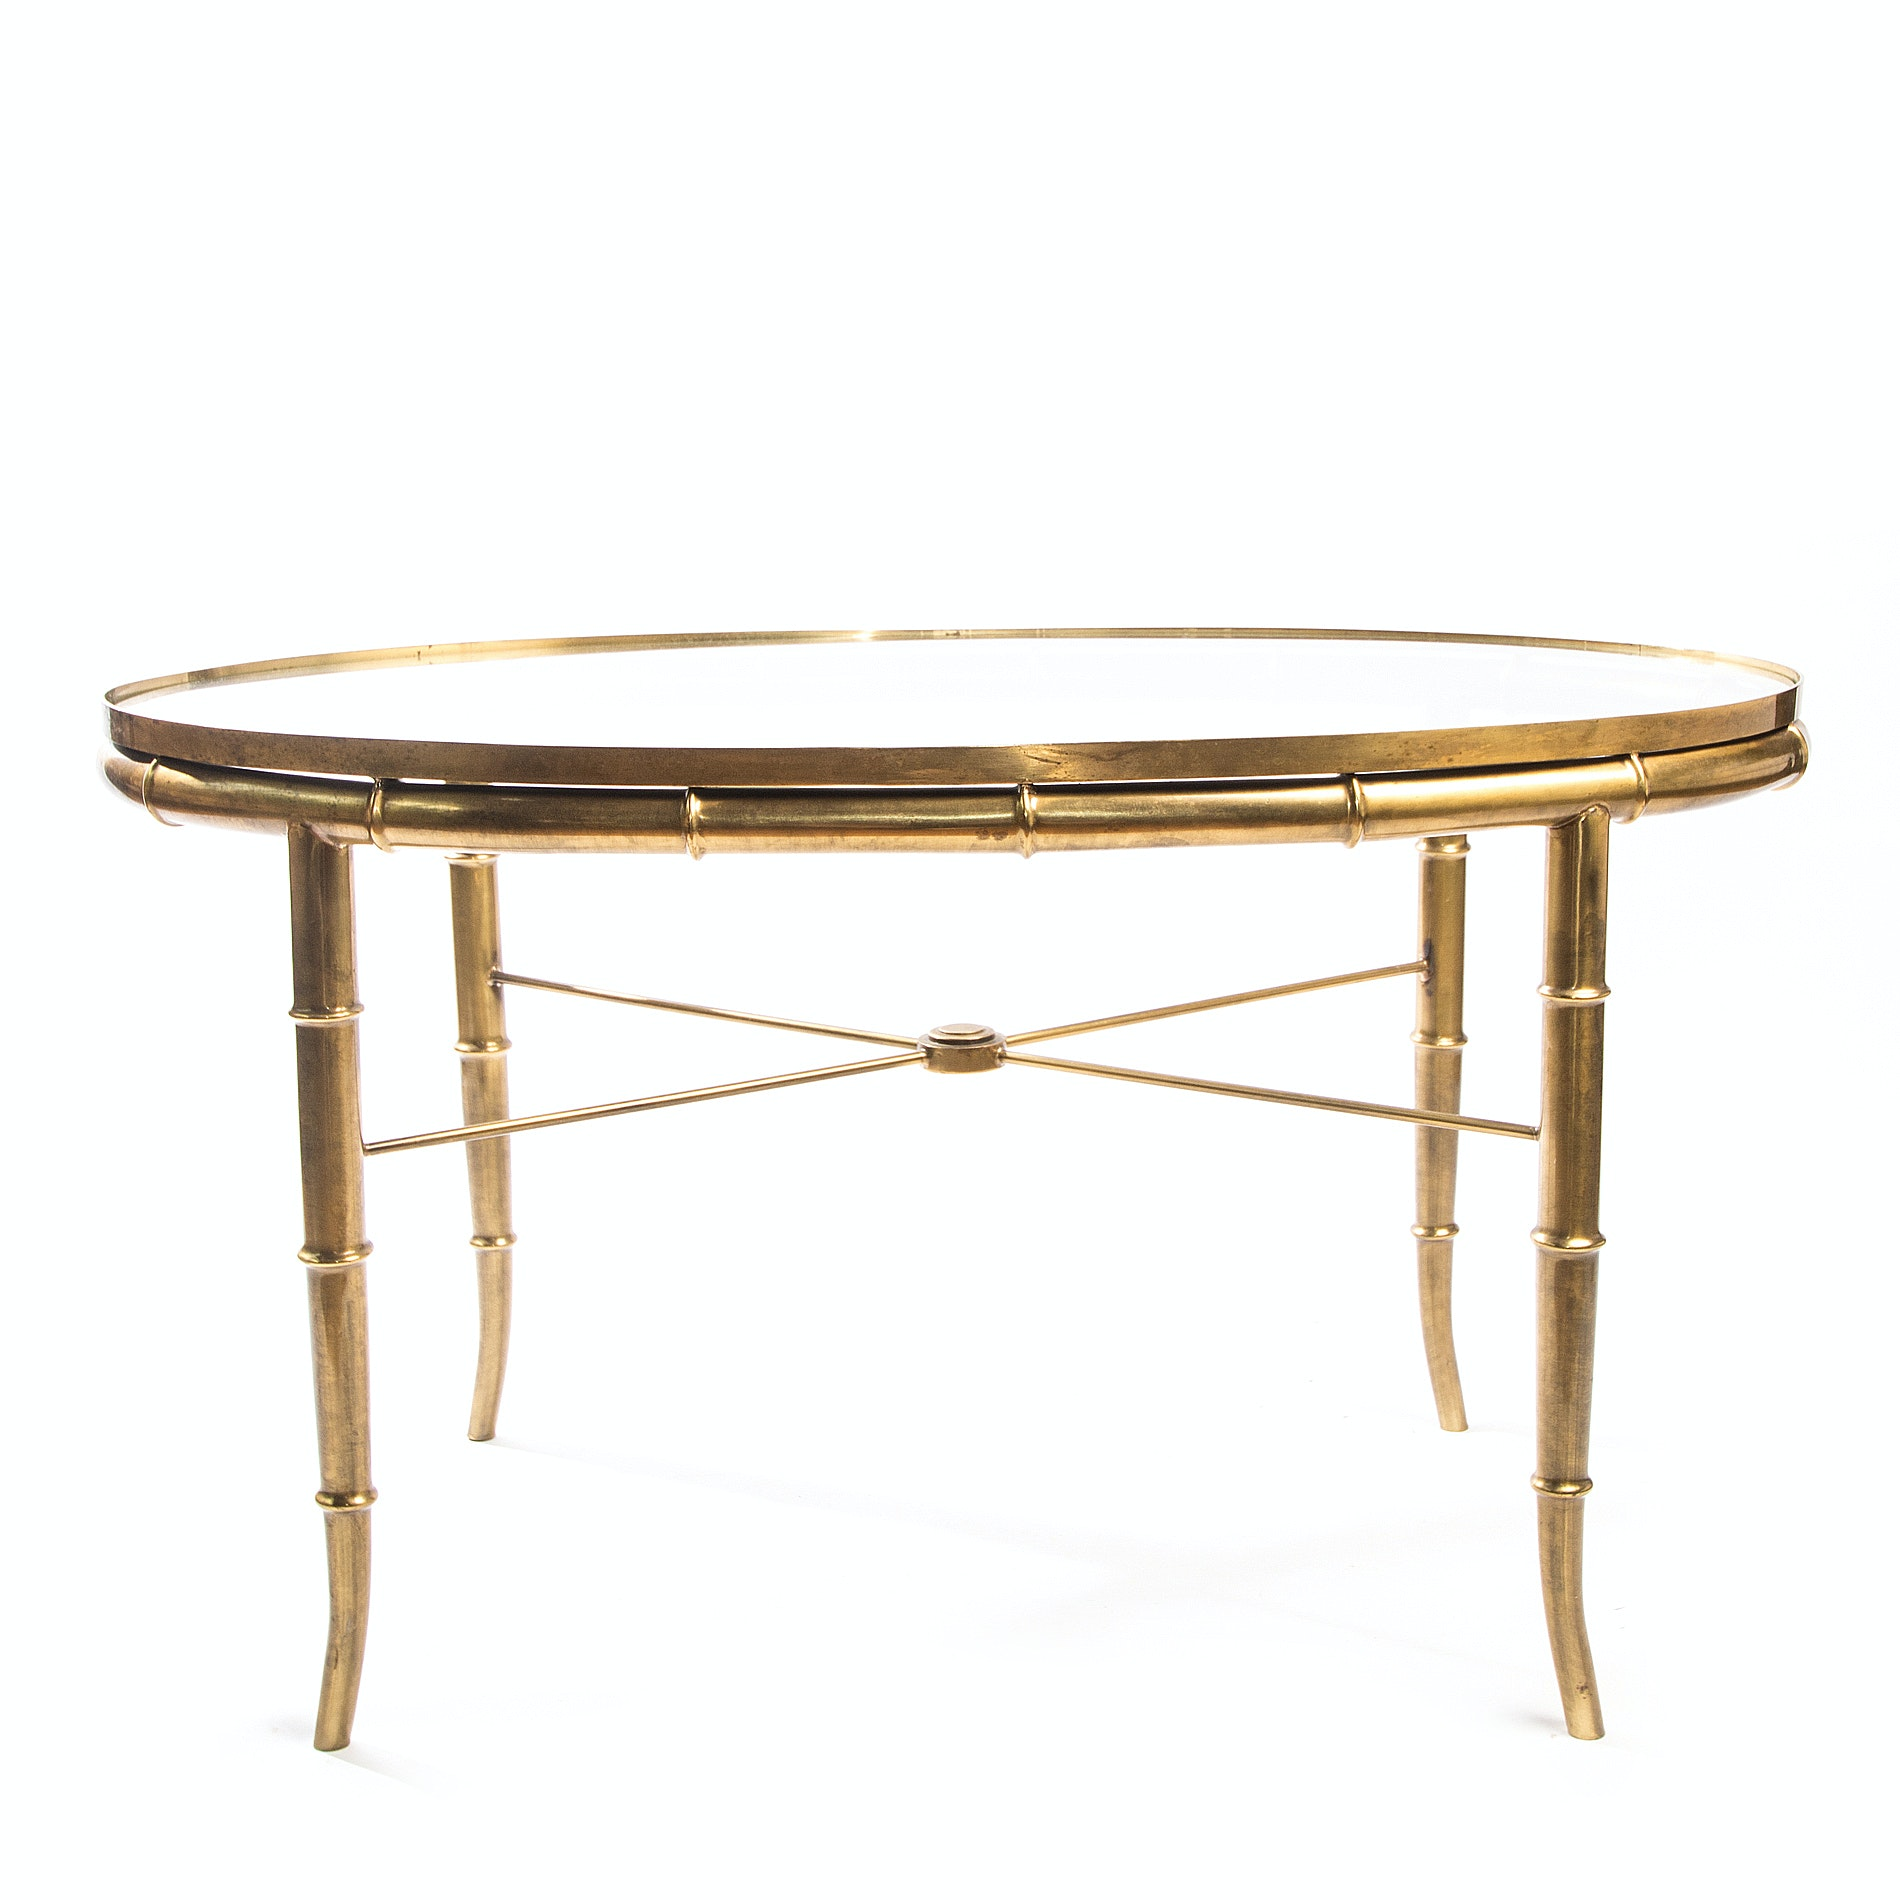 Vintage Hollywood Regency Accent Table by William Doezema for Mastercraft Furniture